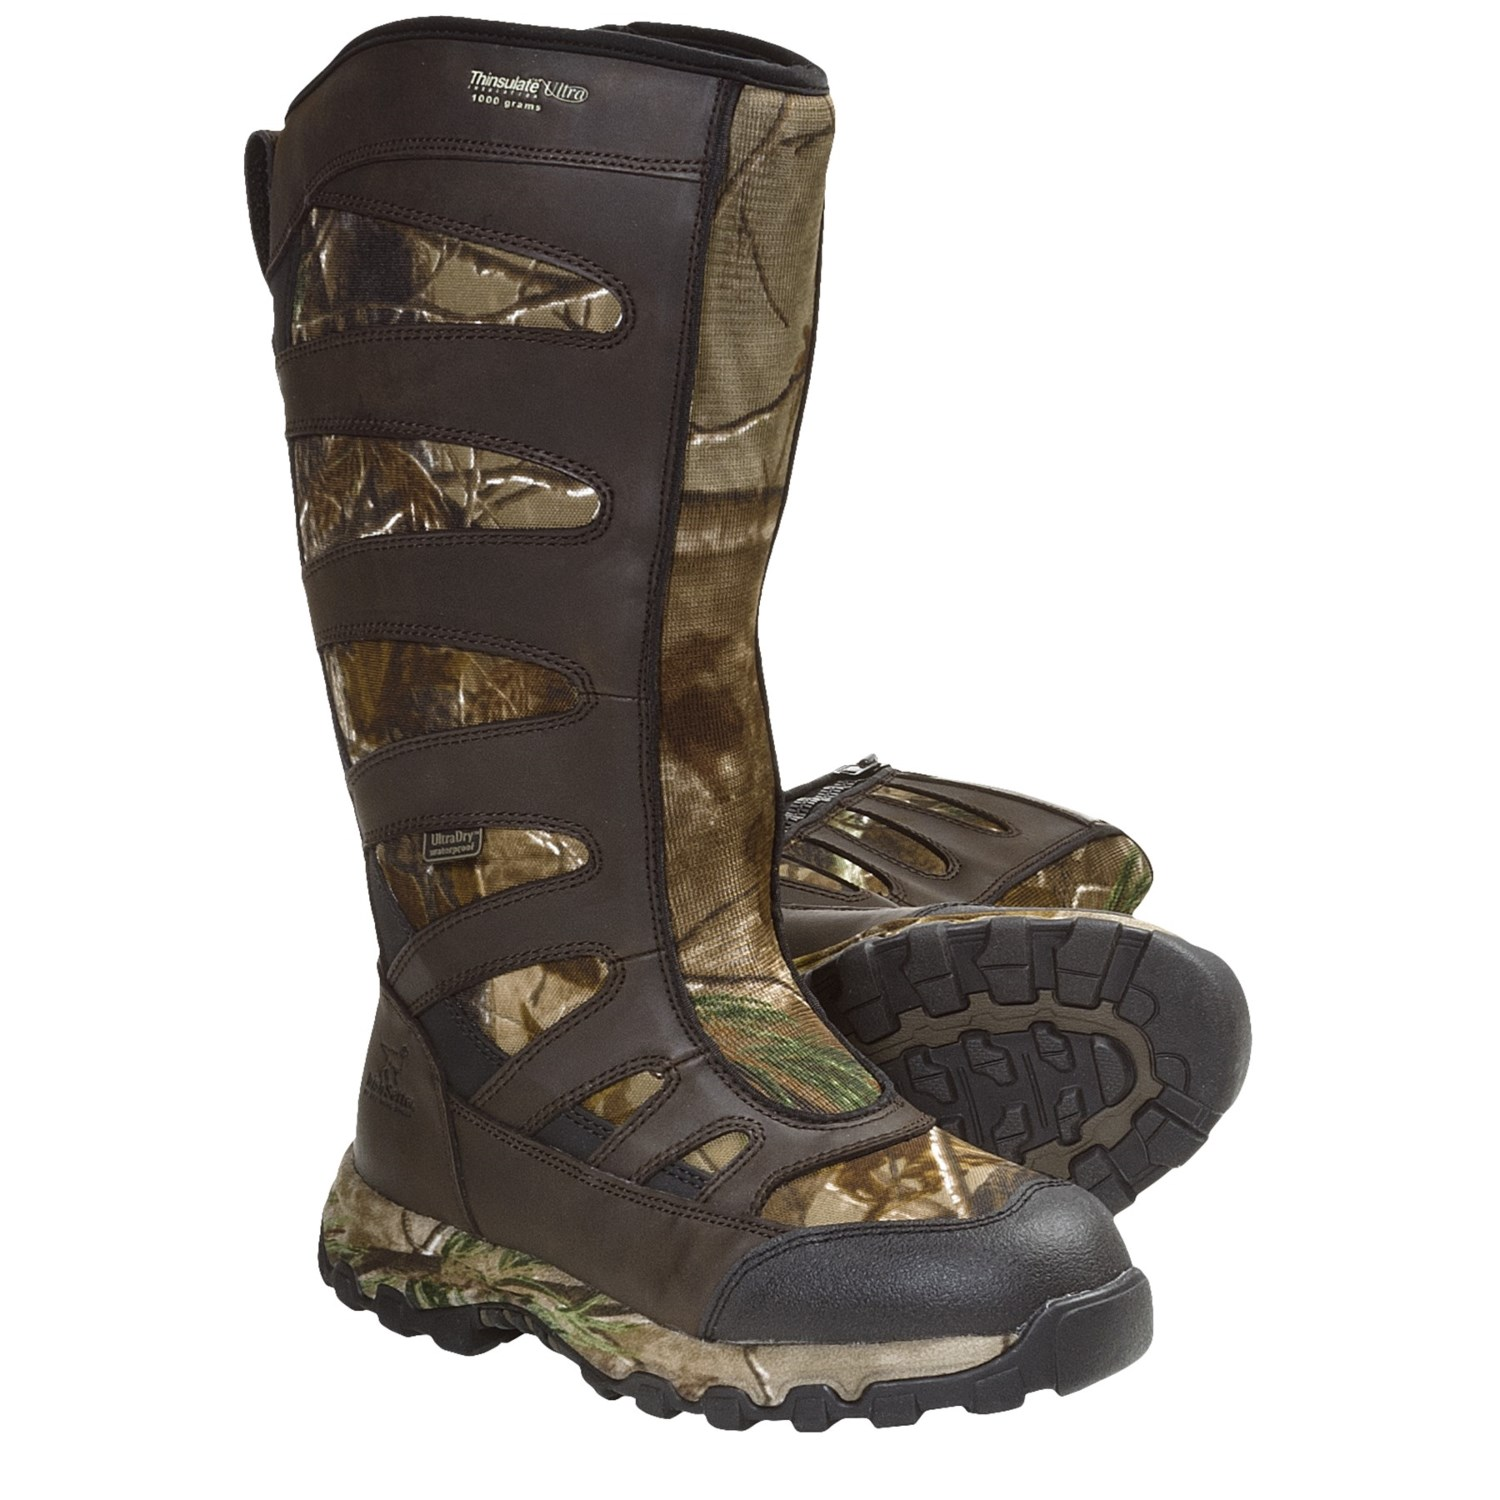 Cool  Setter Ladyhawk Hunting Boots  Waterproof Insulated 15quot For Women